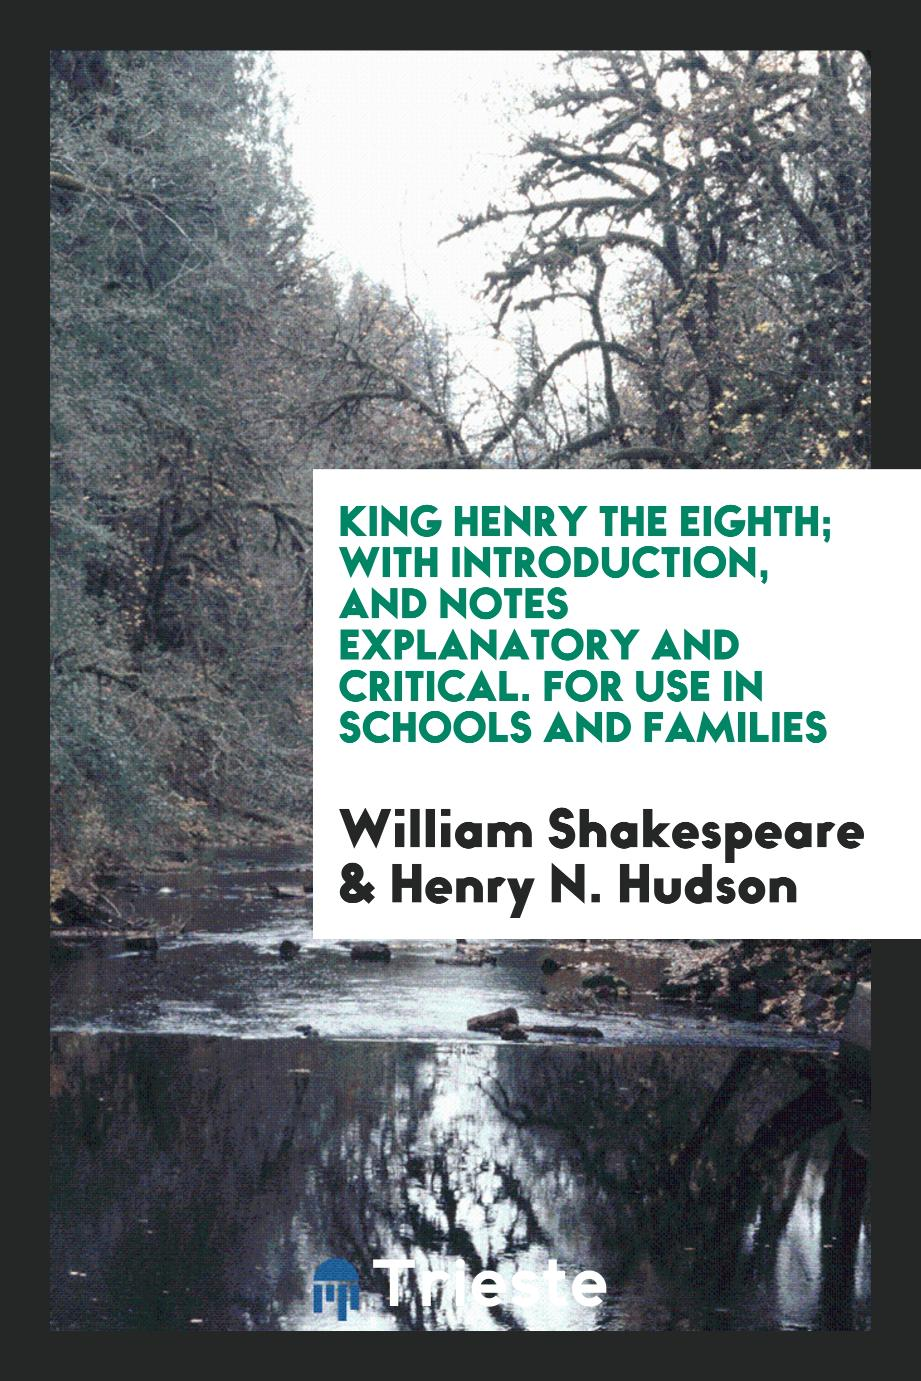 King Henry the Eighth; With Introduction, and Notes Explanatory and Critical. For Use in Schools and Families